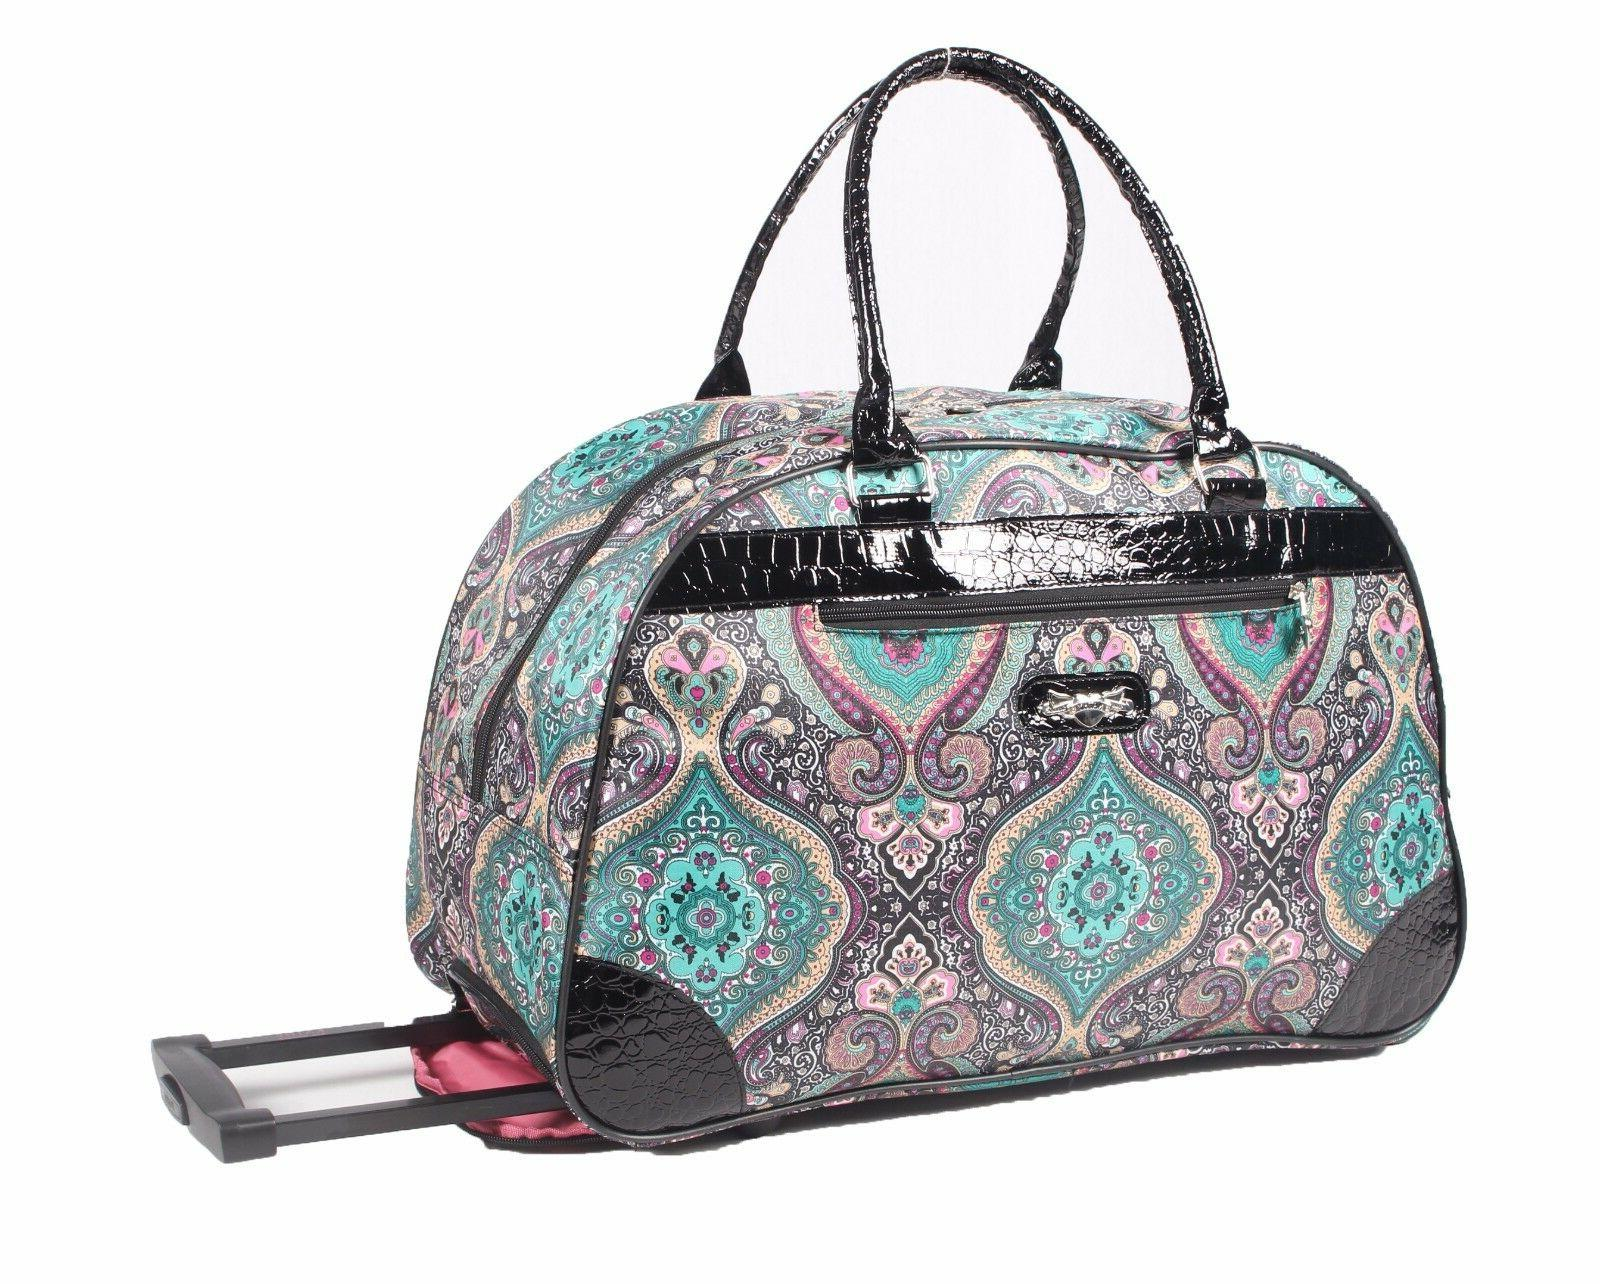 new 22 inch wheeled duffel luggage carry